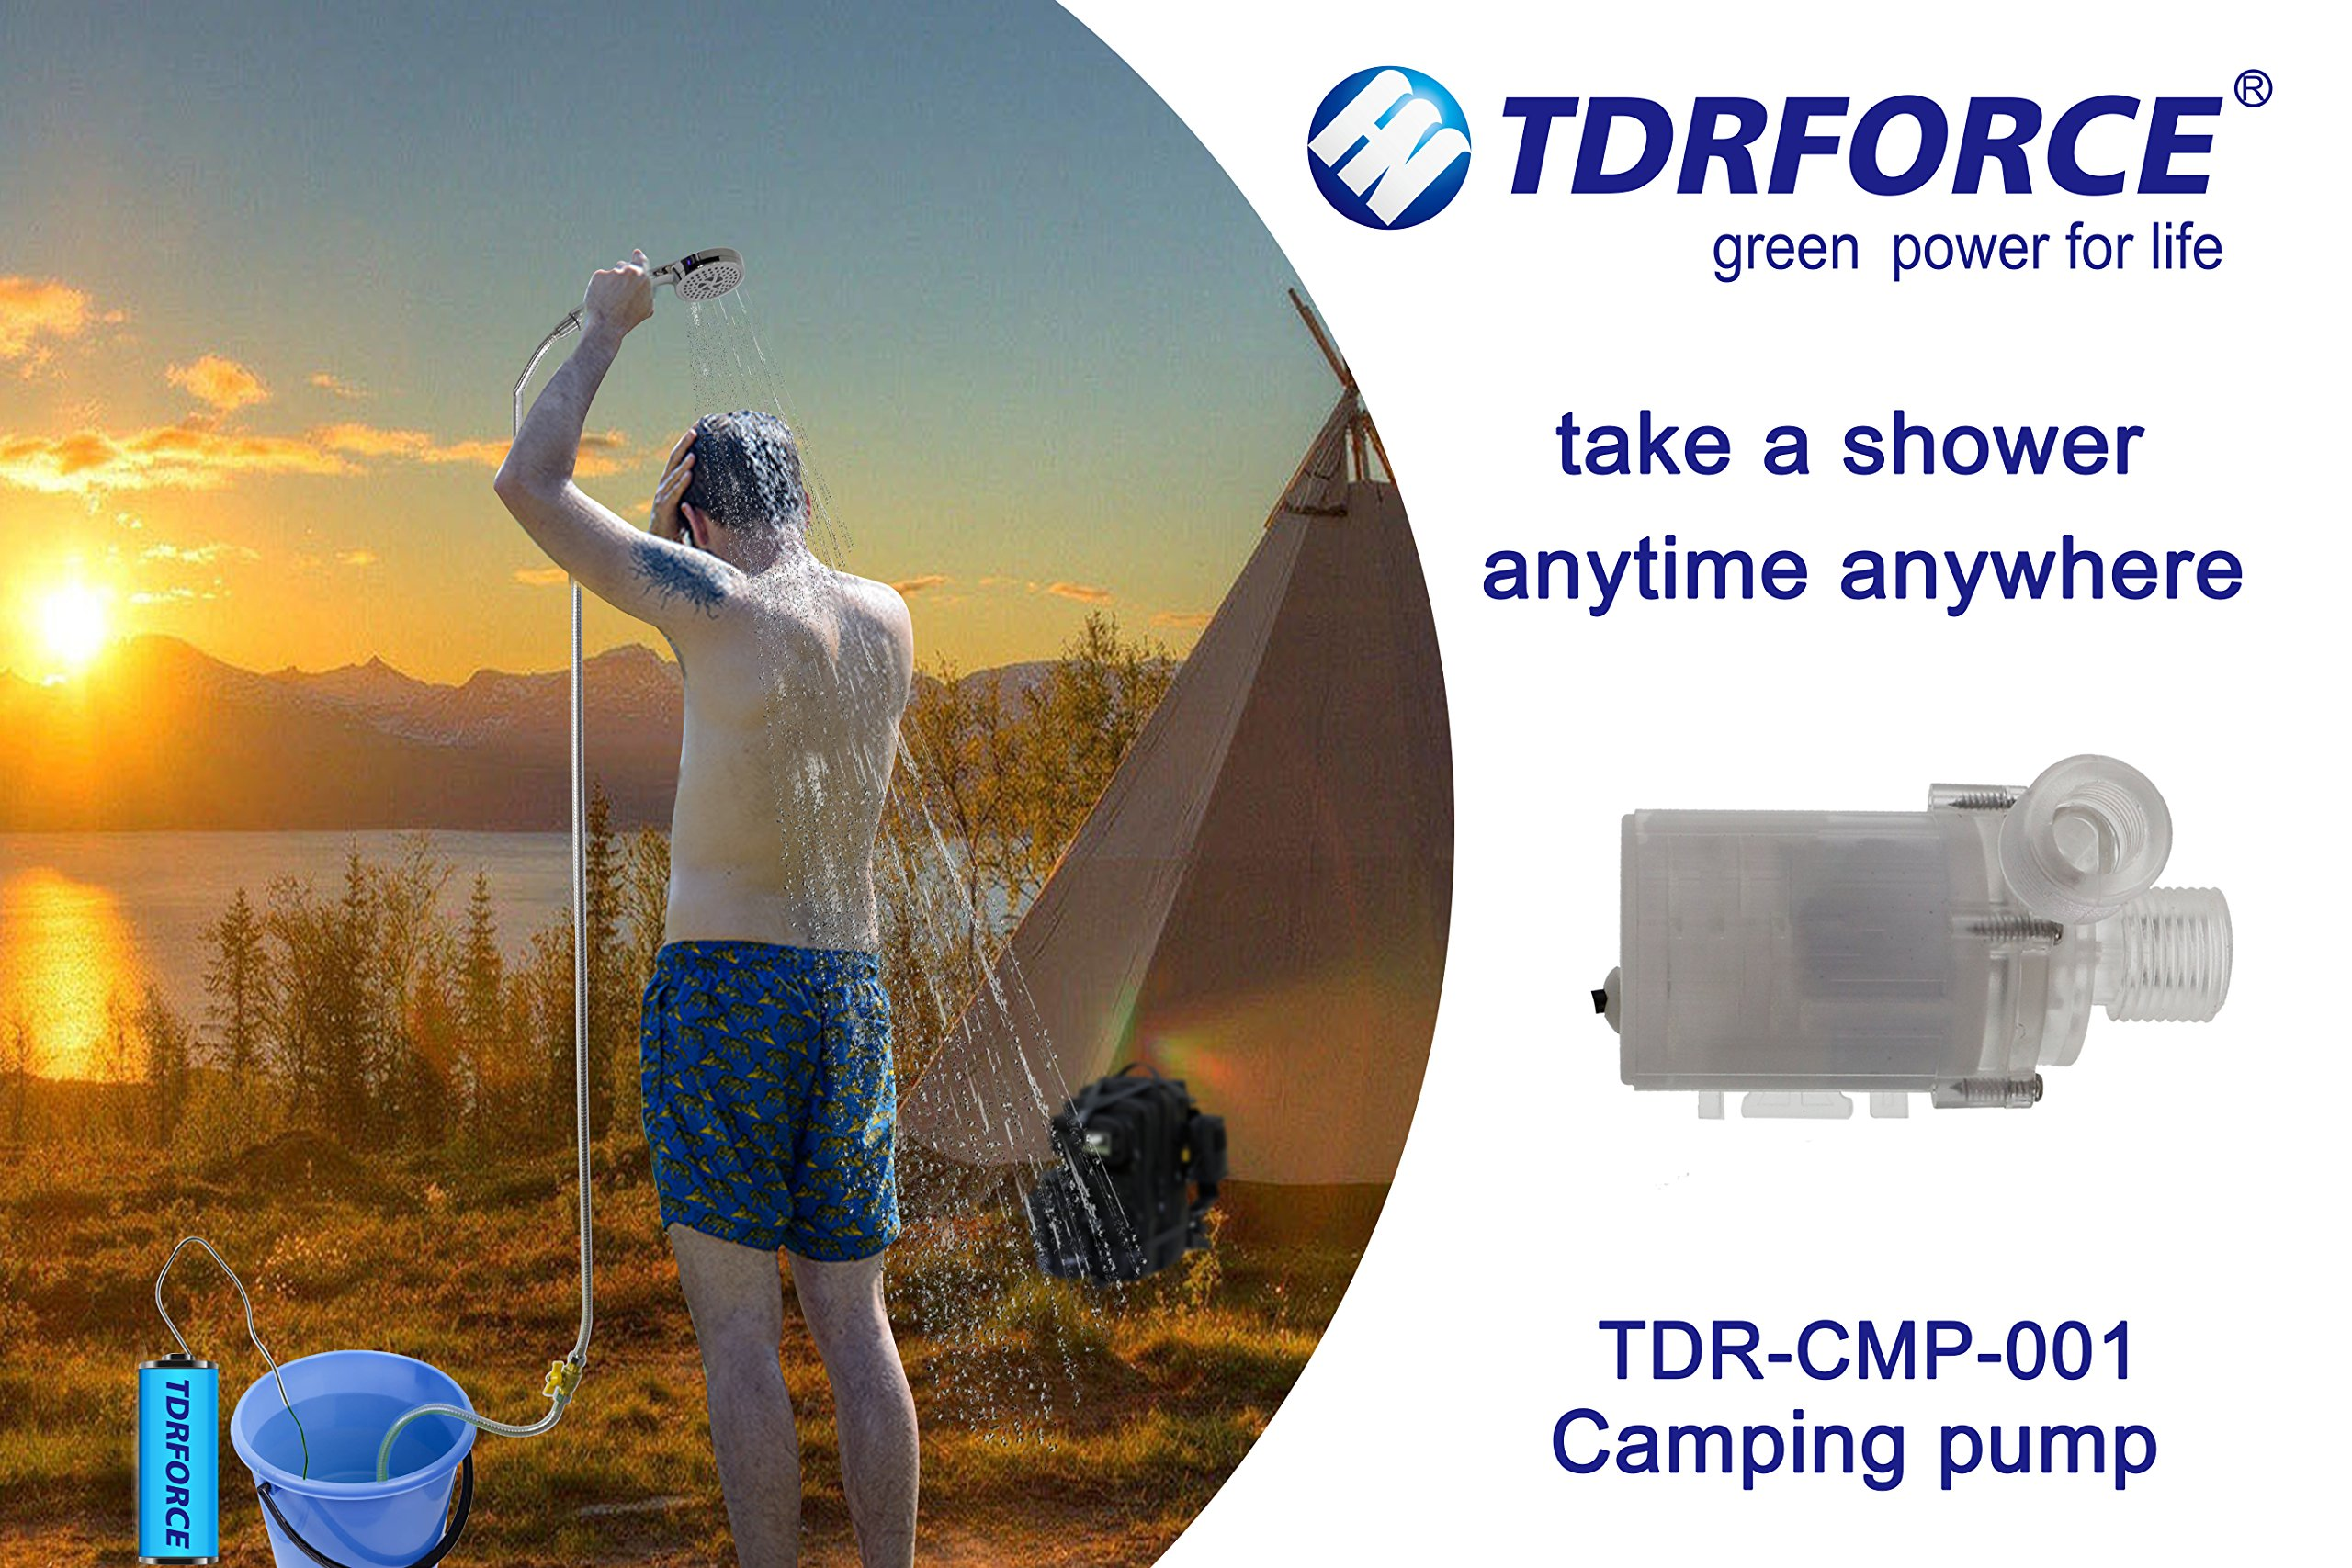 TDRFORCE 24V Portable Outdoor Shower, Battery-Powered Rechargeable Handheld Shower for Camping - Pumps、 Camping, Pet Cleaning, Includes Water Pump, Shower Head, On/Off Switch and Accessories